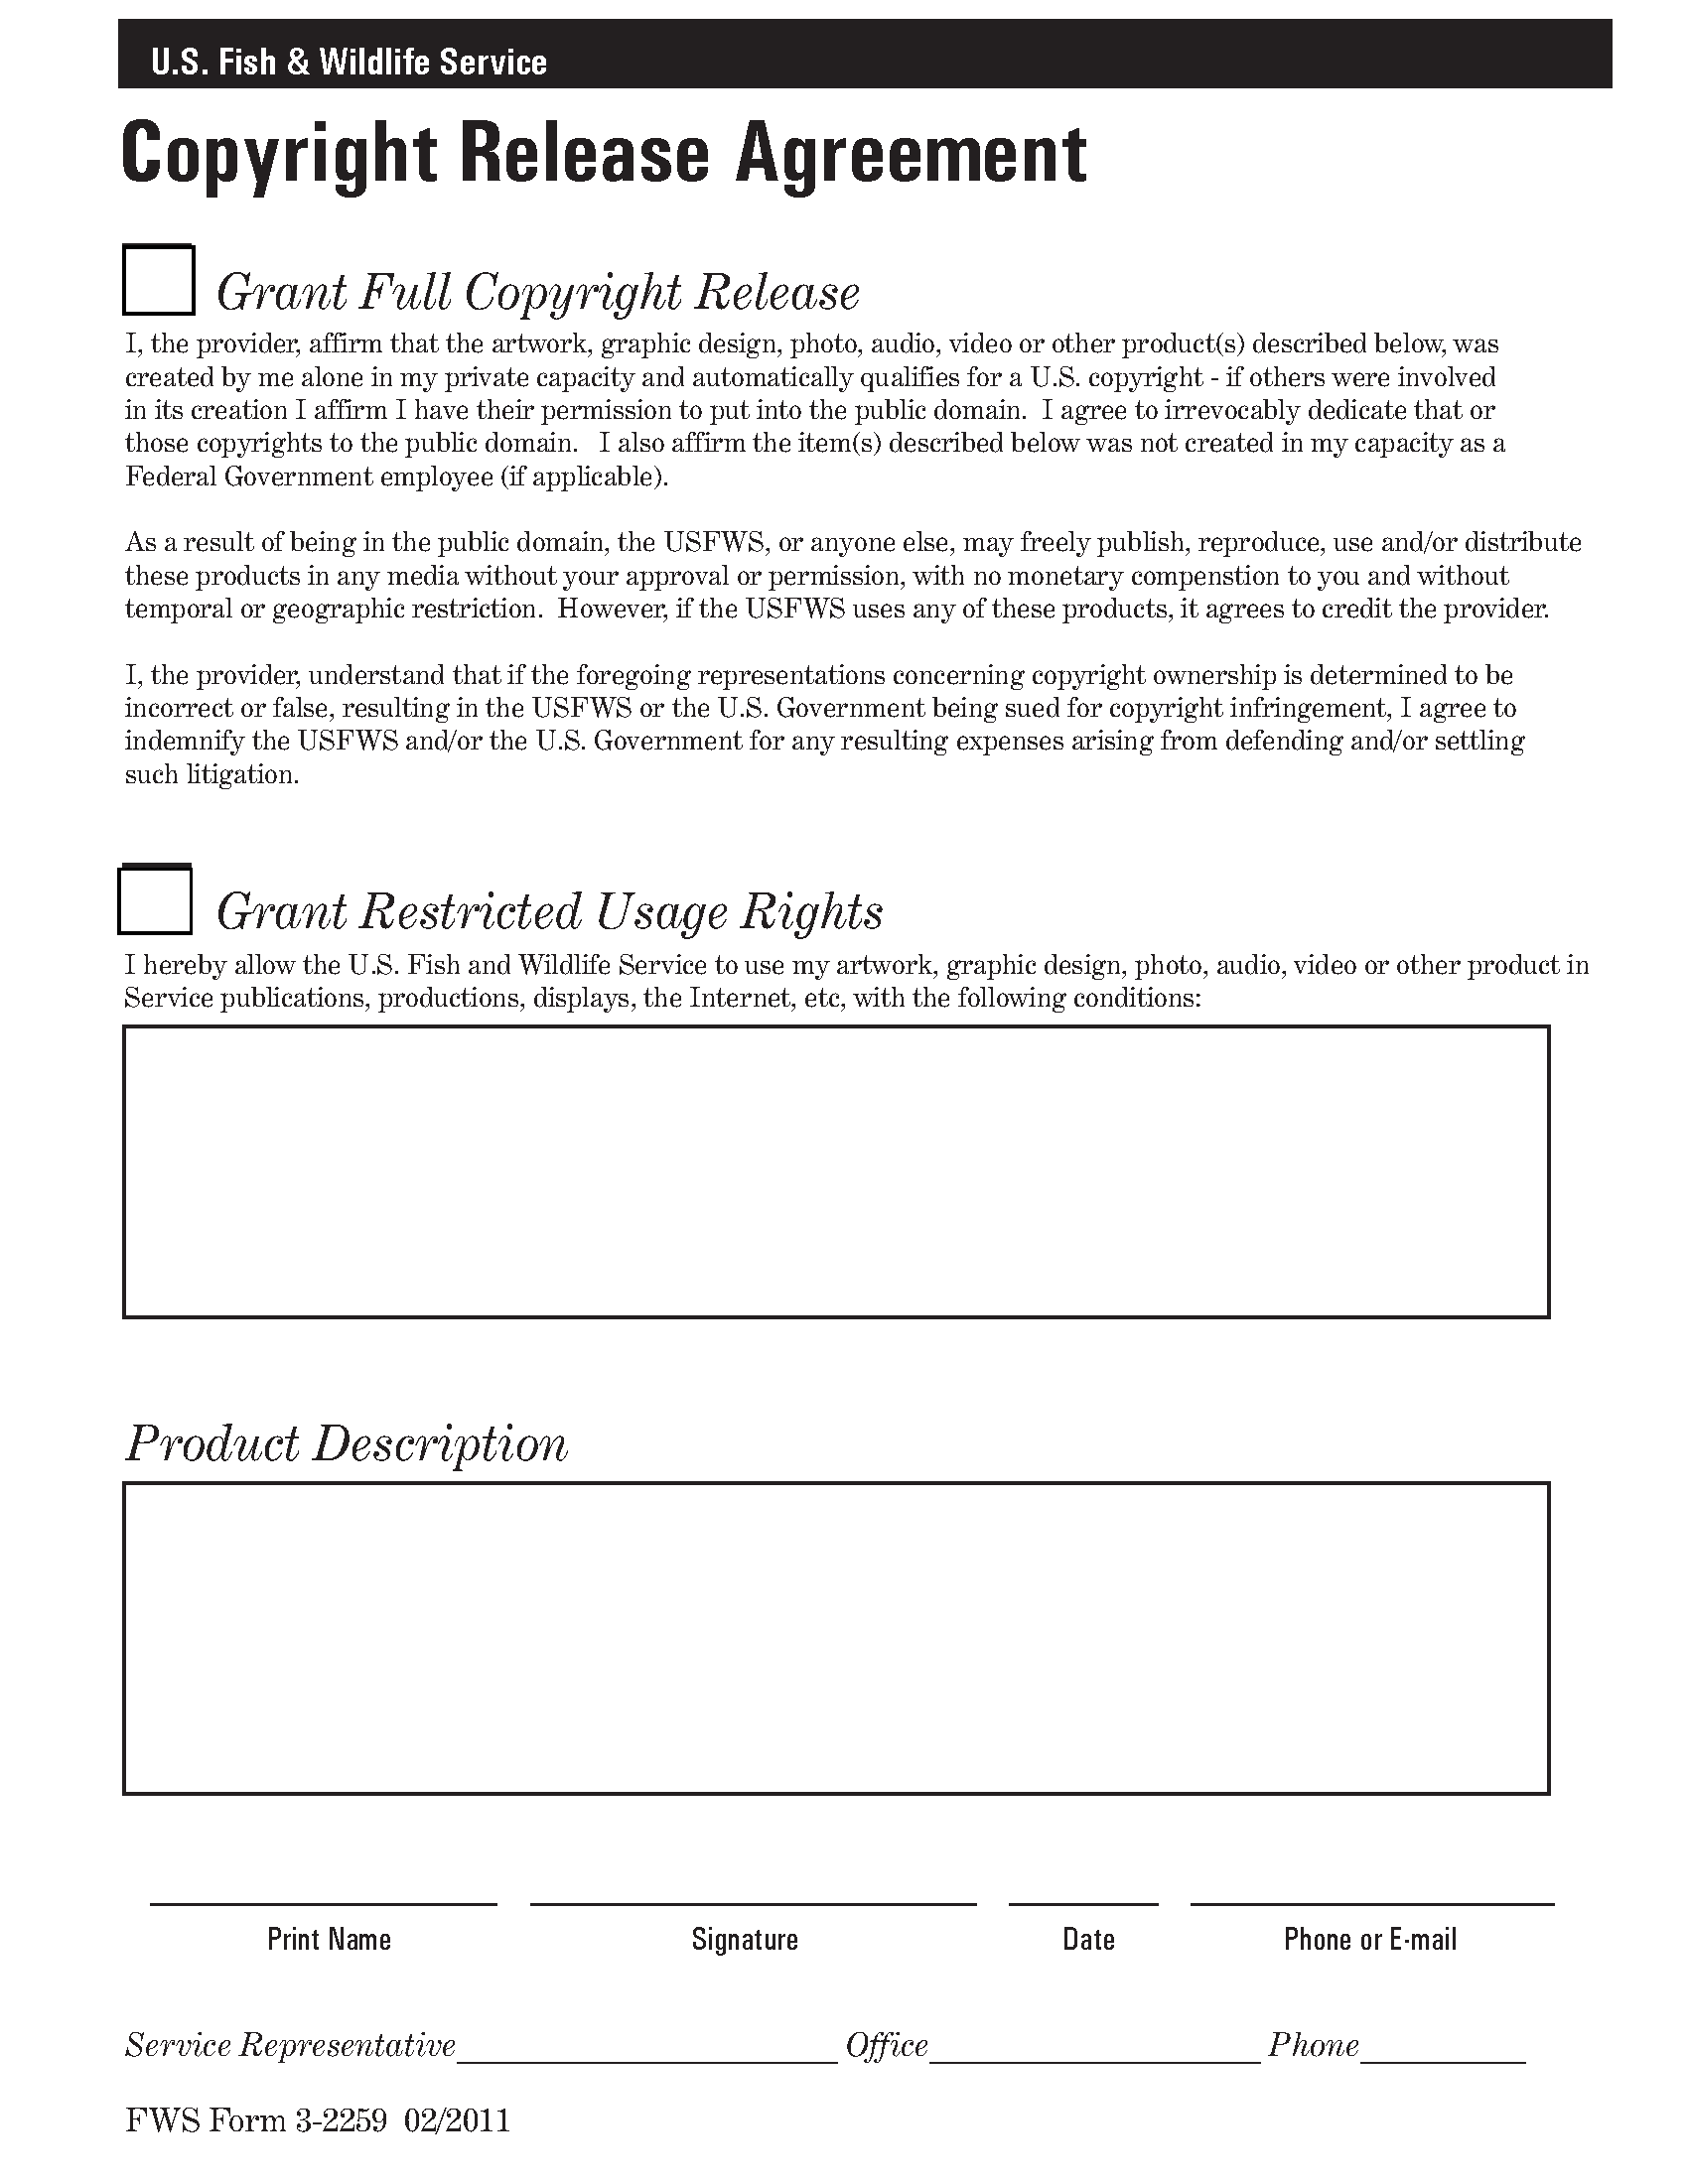 Copyright Release Agreement Documents Usfws National